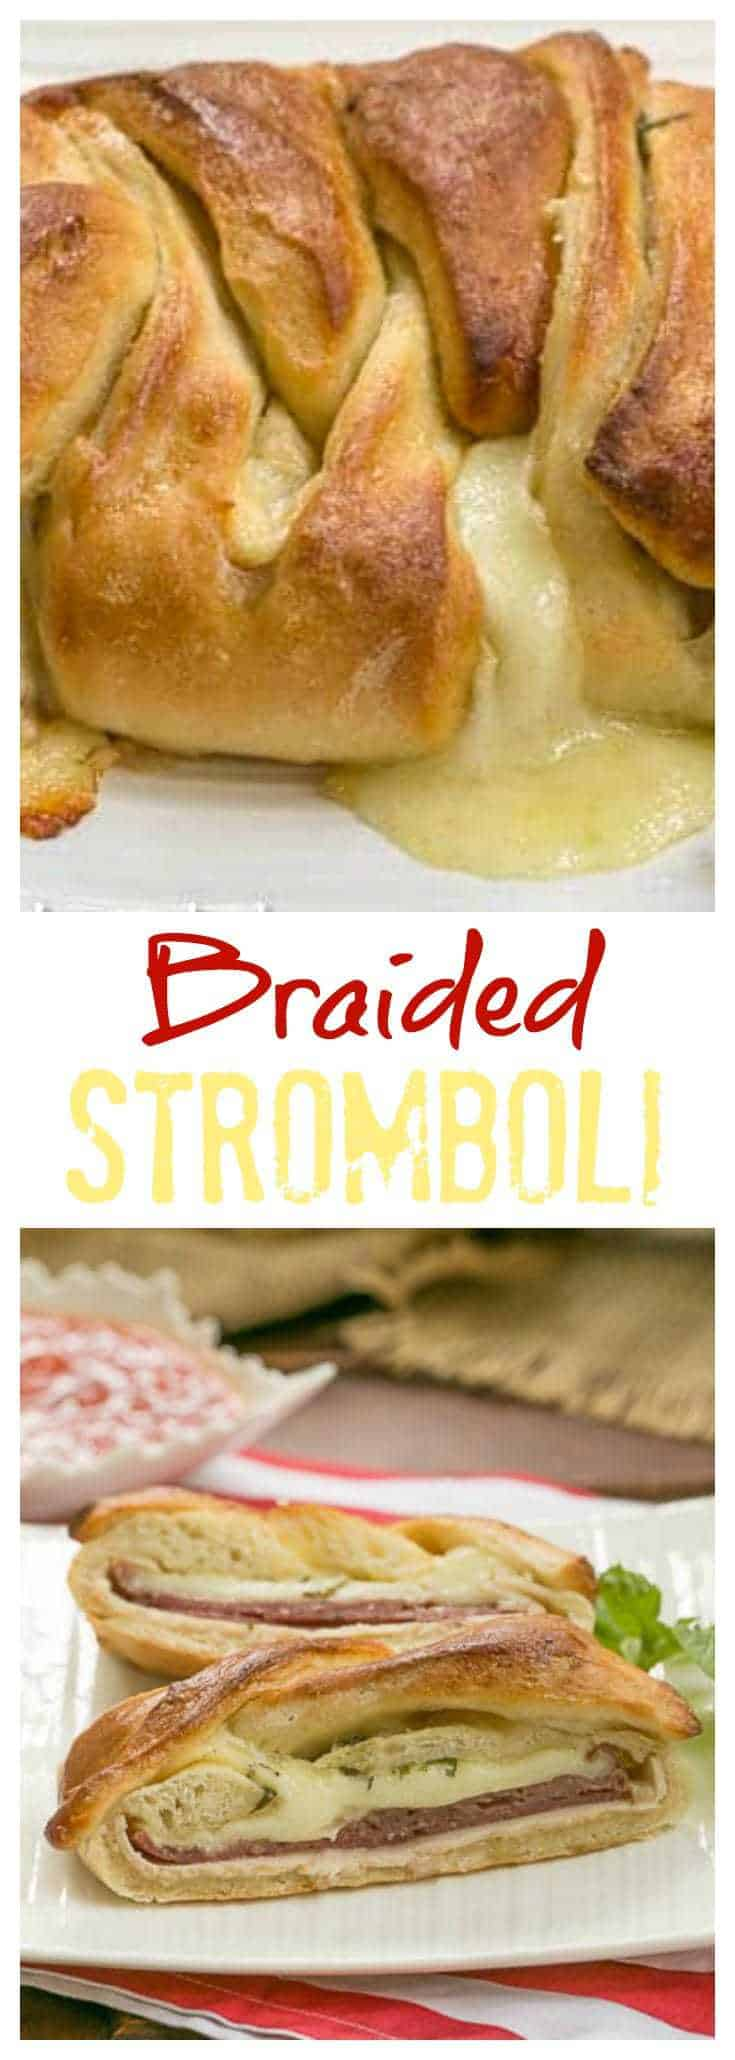 Braided Stromboli - pizza dough packed with Italian meats and cheese! #stromboli #gameday #cheese